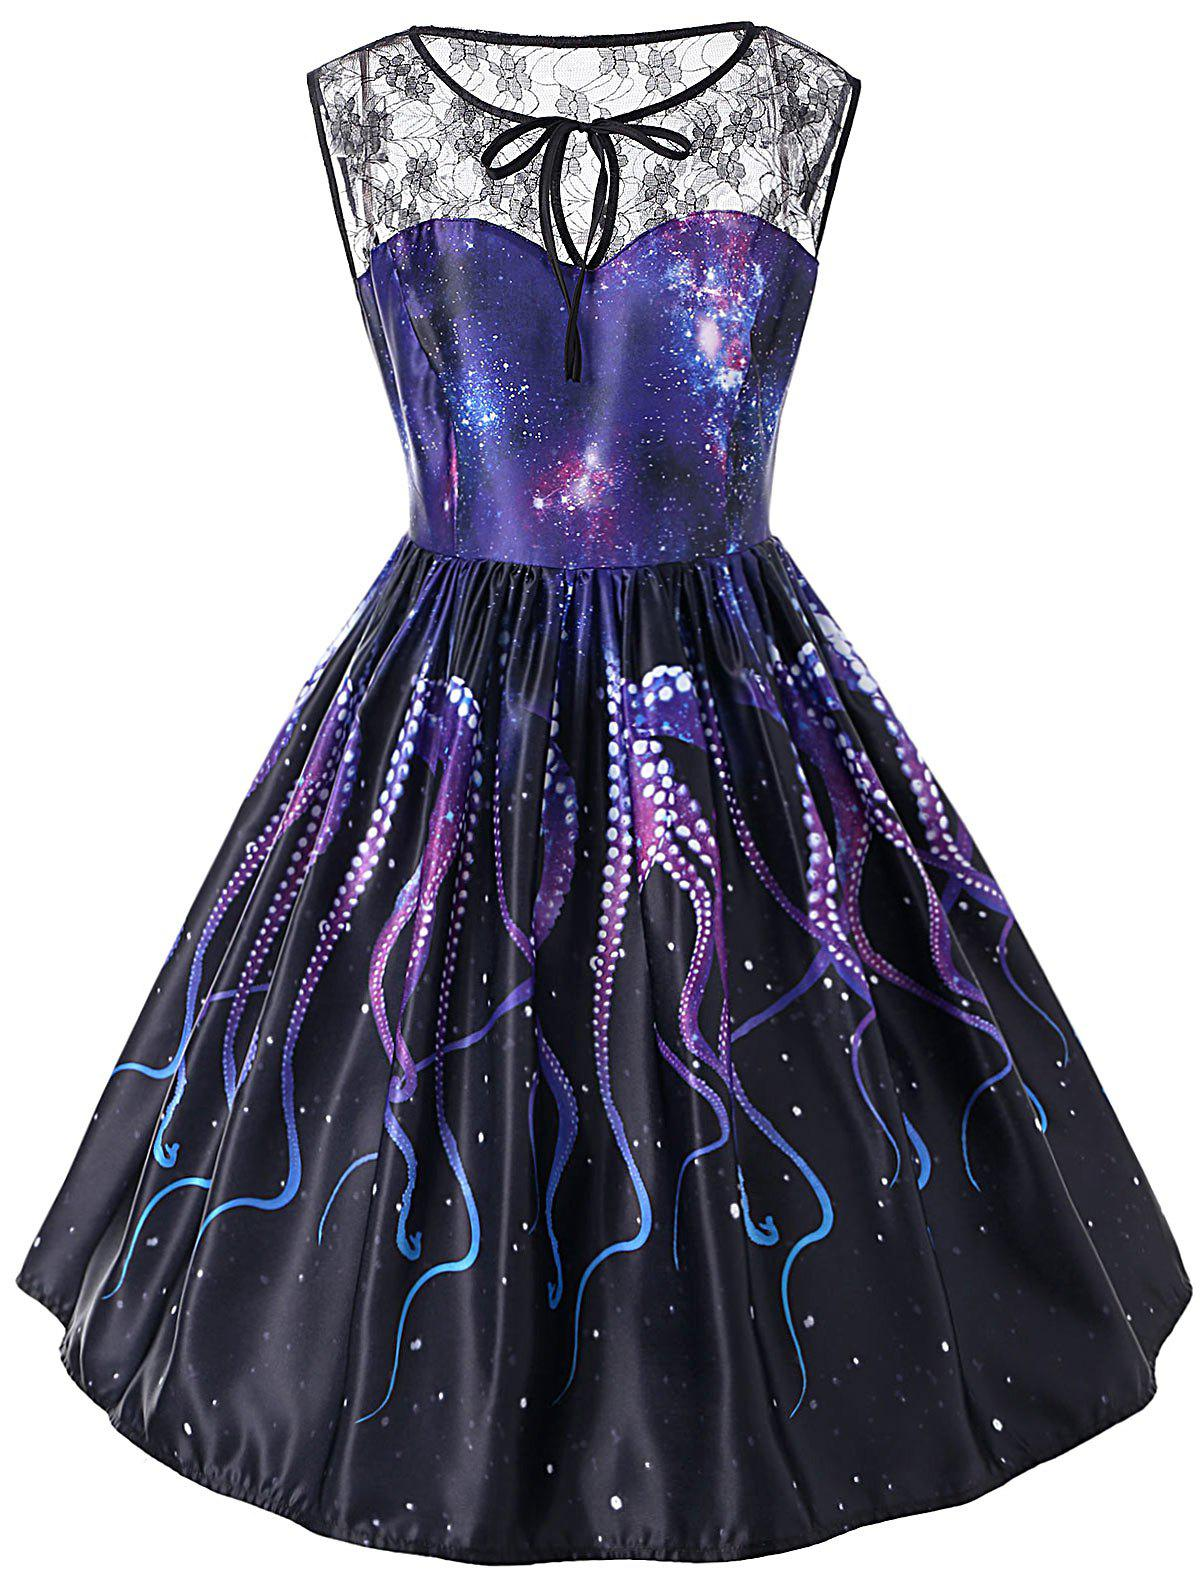 Octopus Claw Printed Lace Insert Sleeveless Dress - MIDNIGHT 2XL